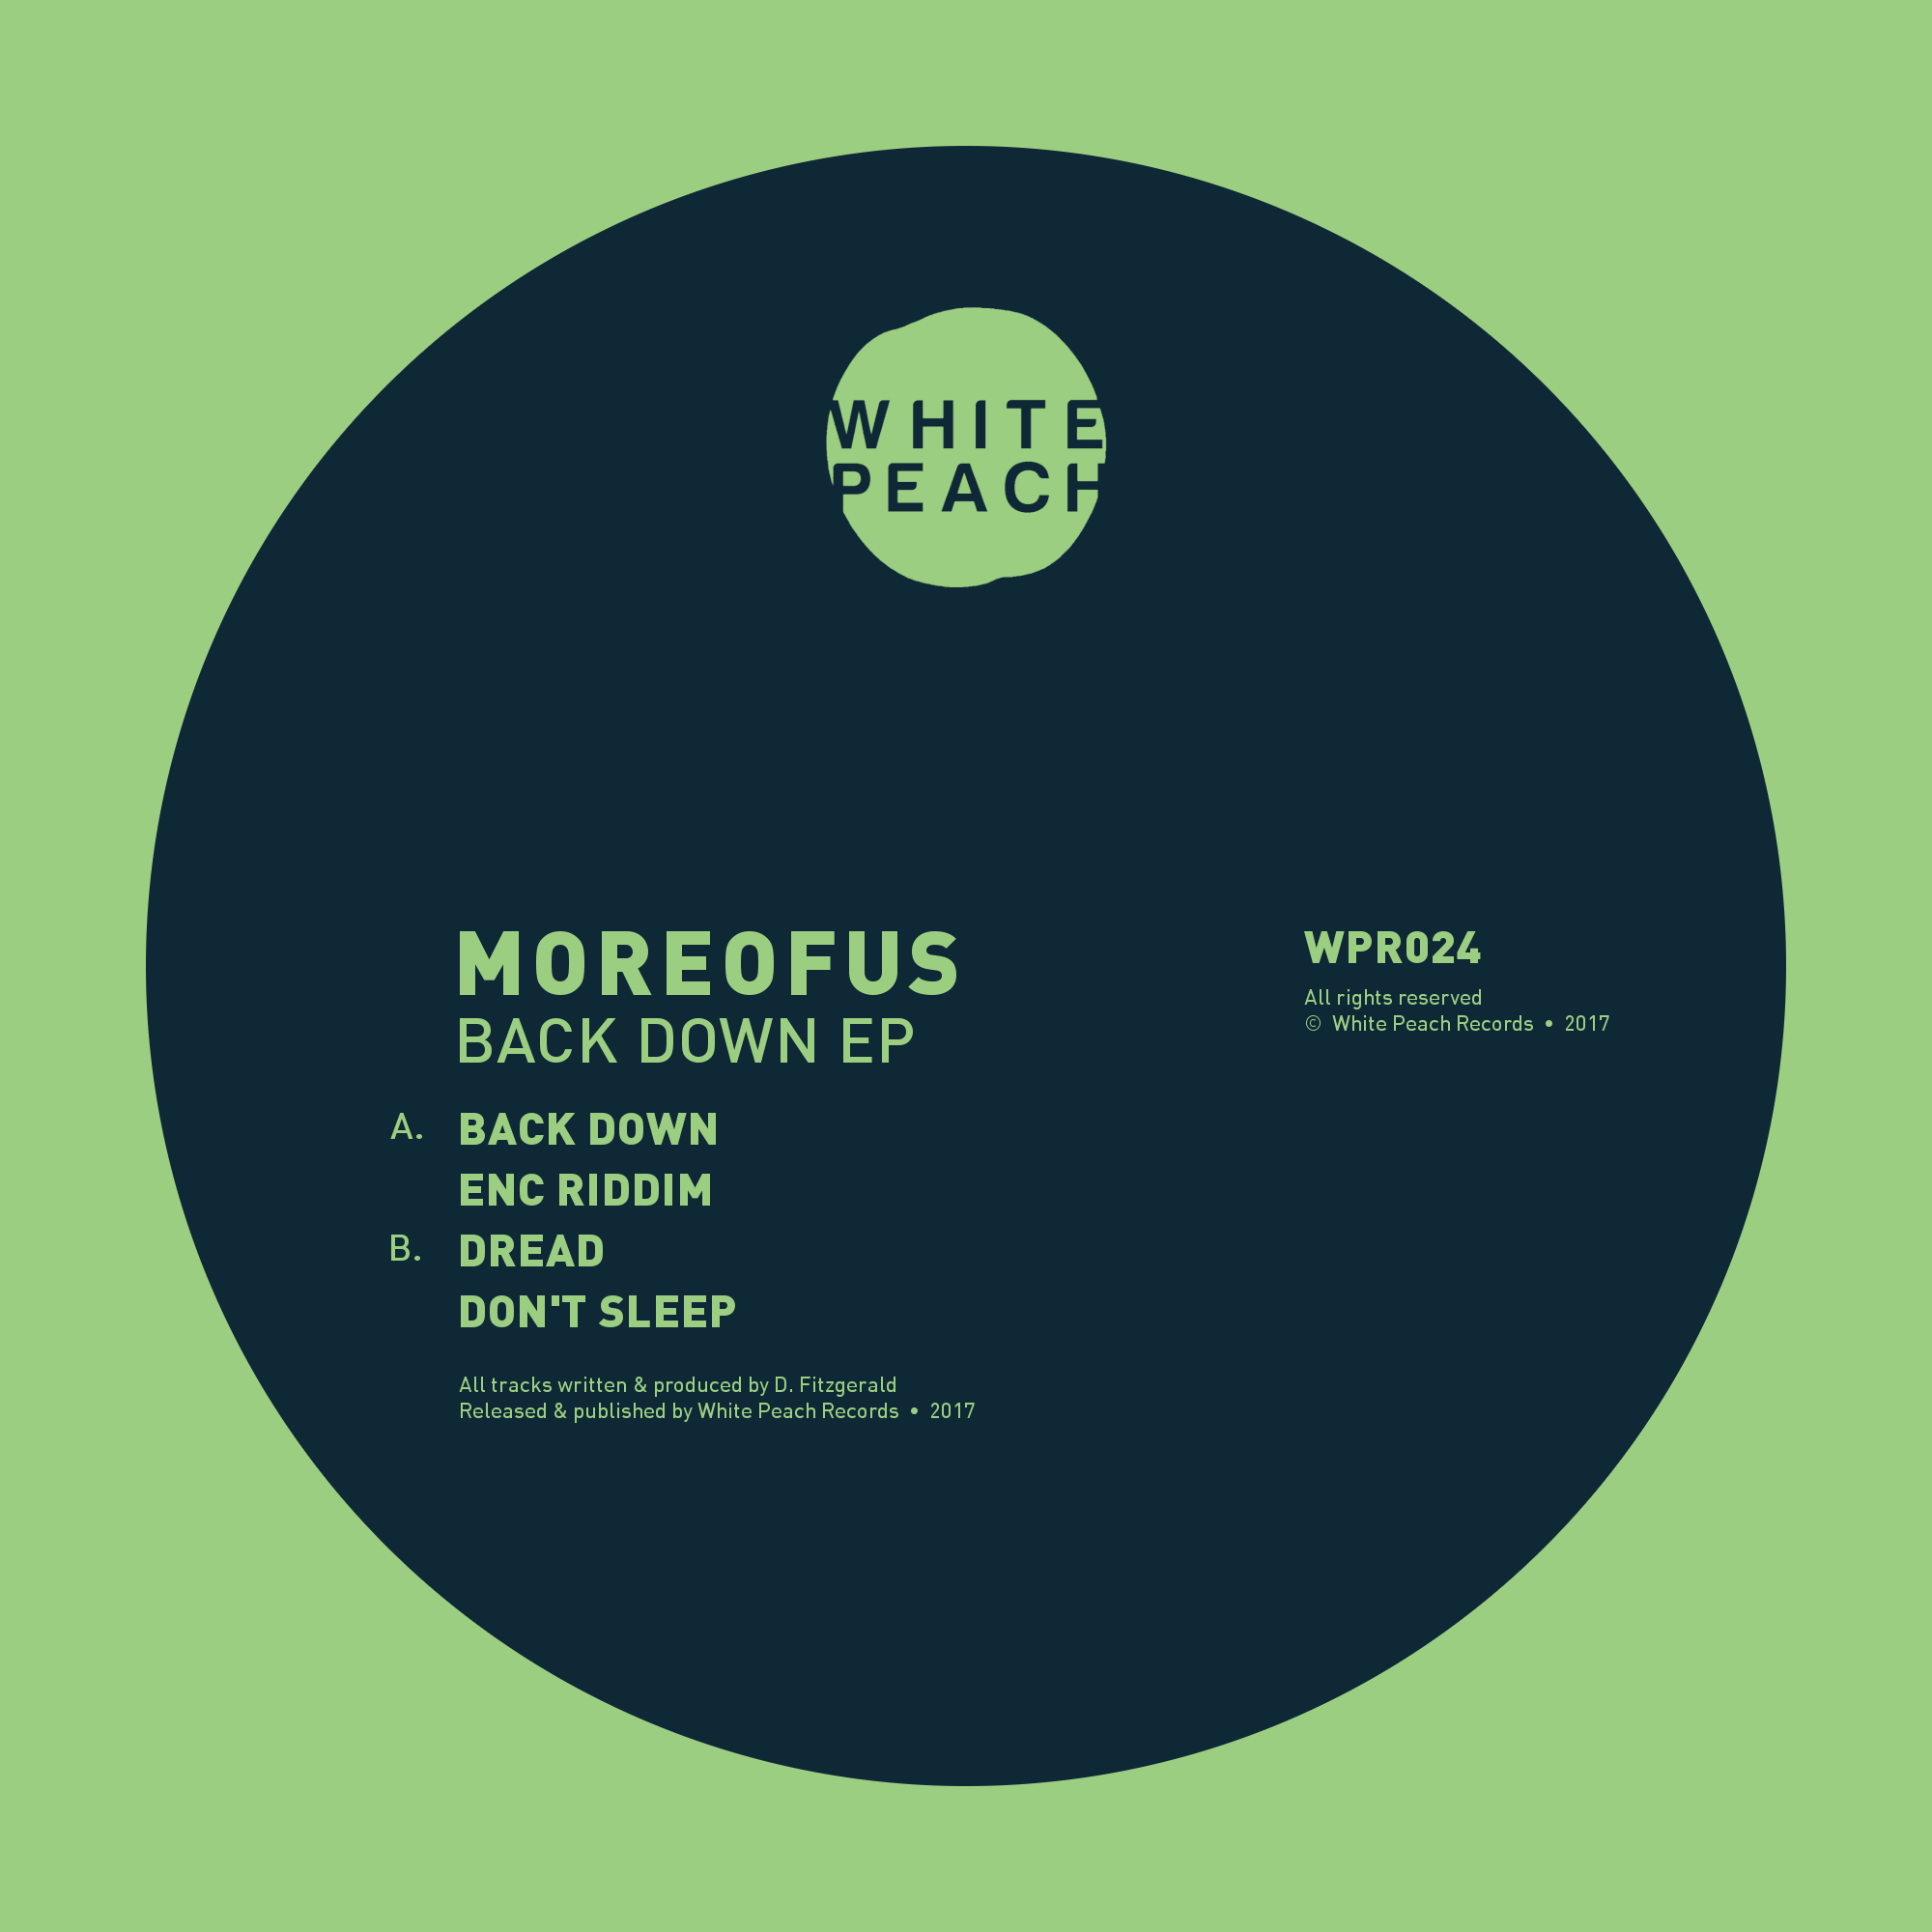 WPR024 (Moreofus - Back Down EP, digital artwork).png